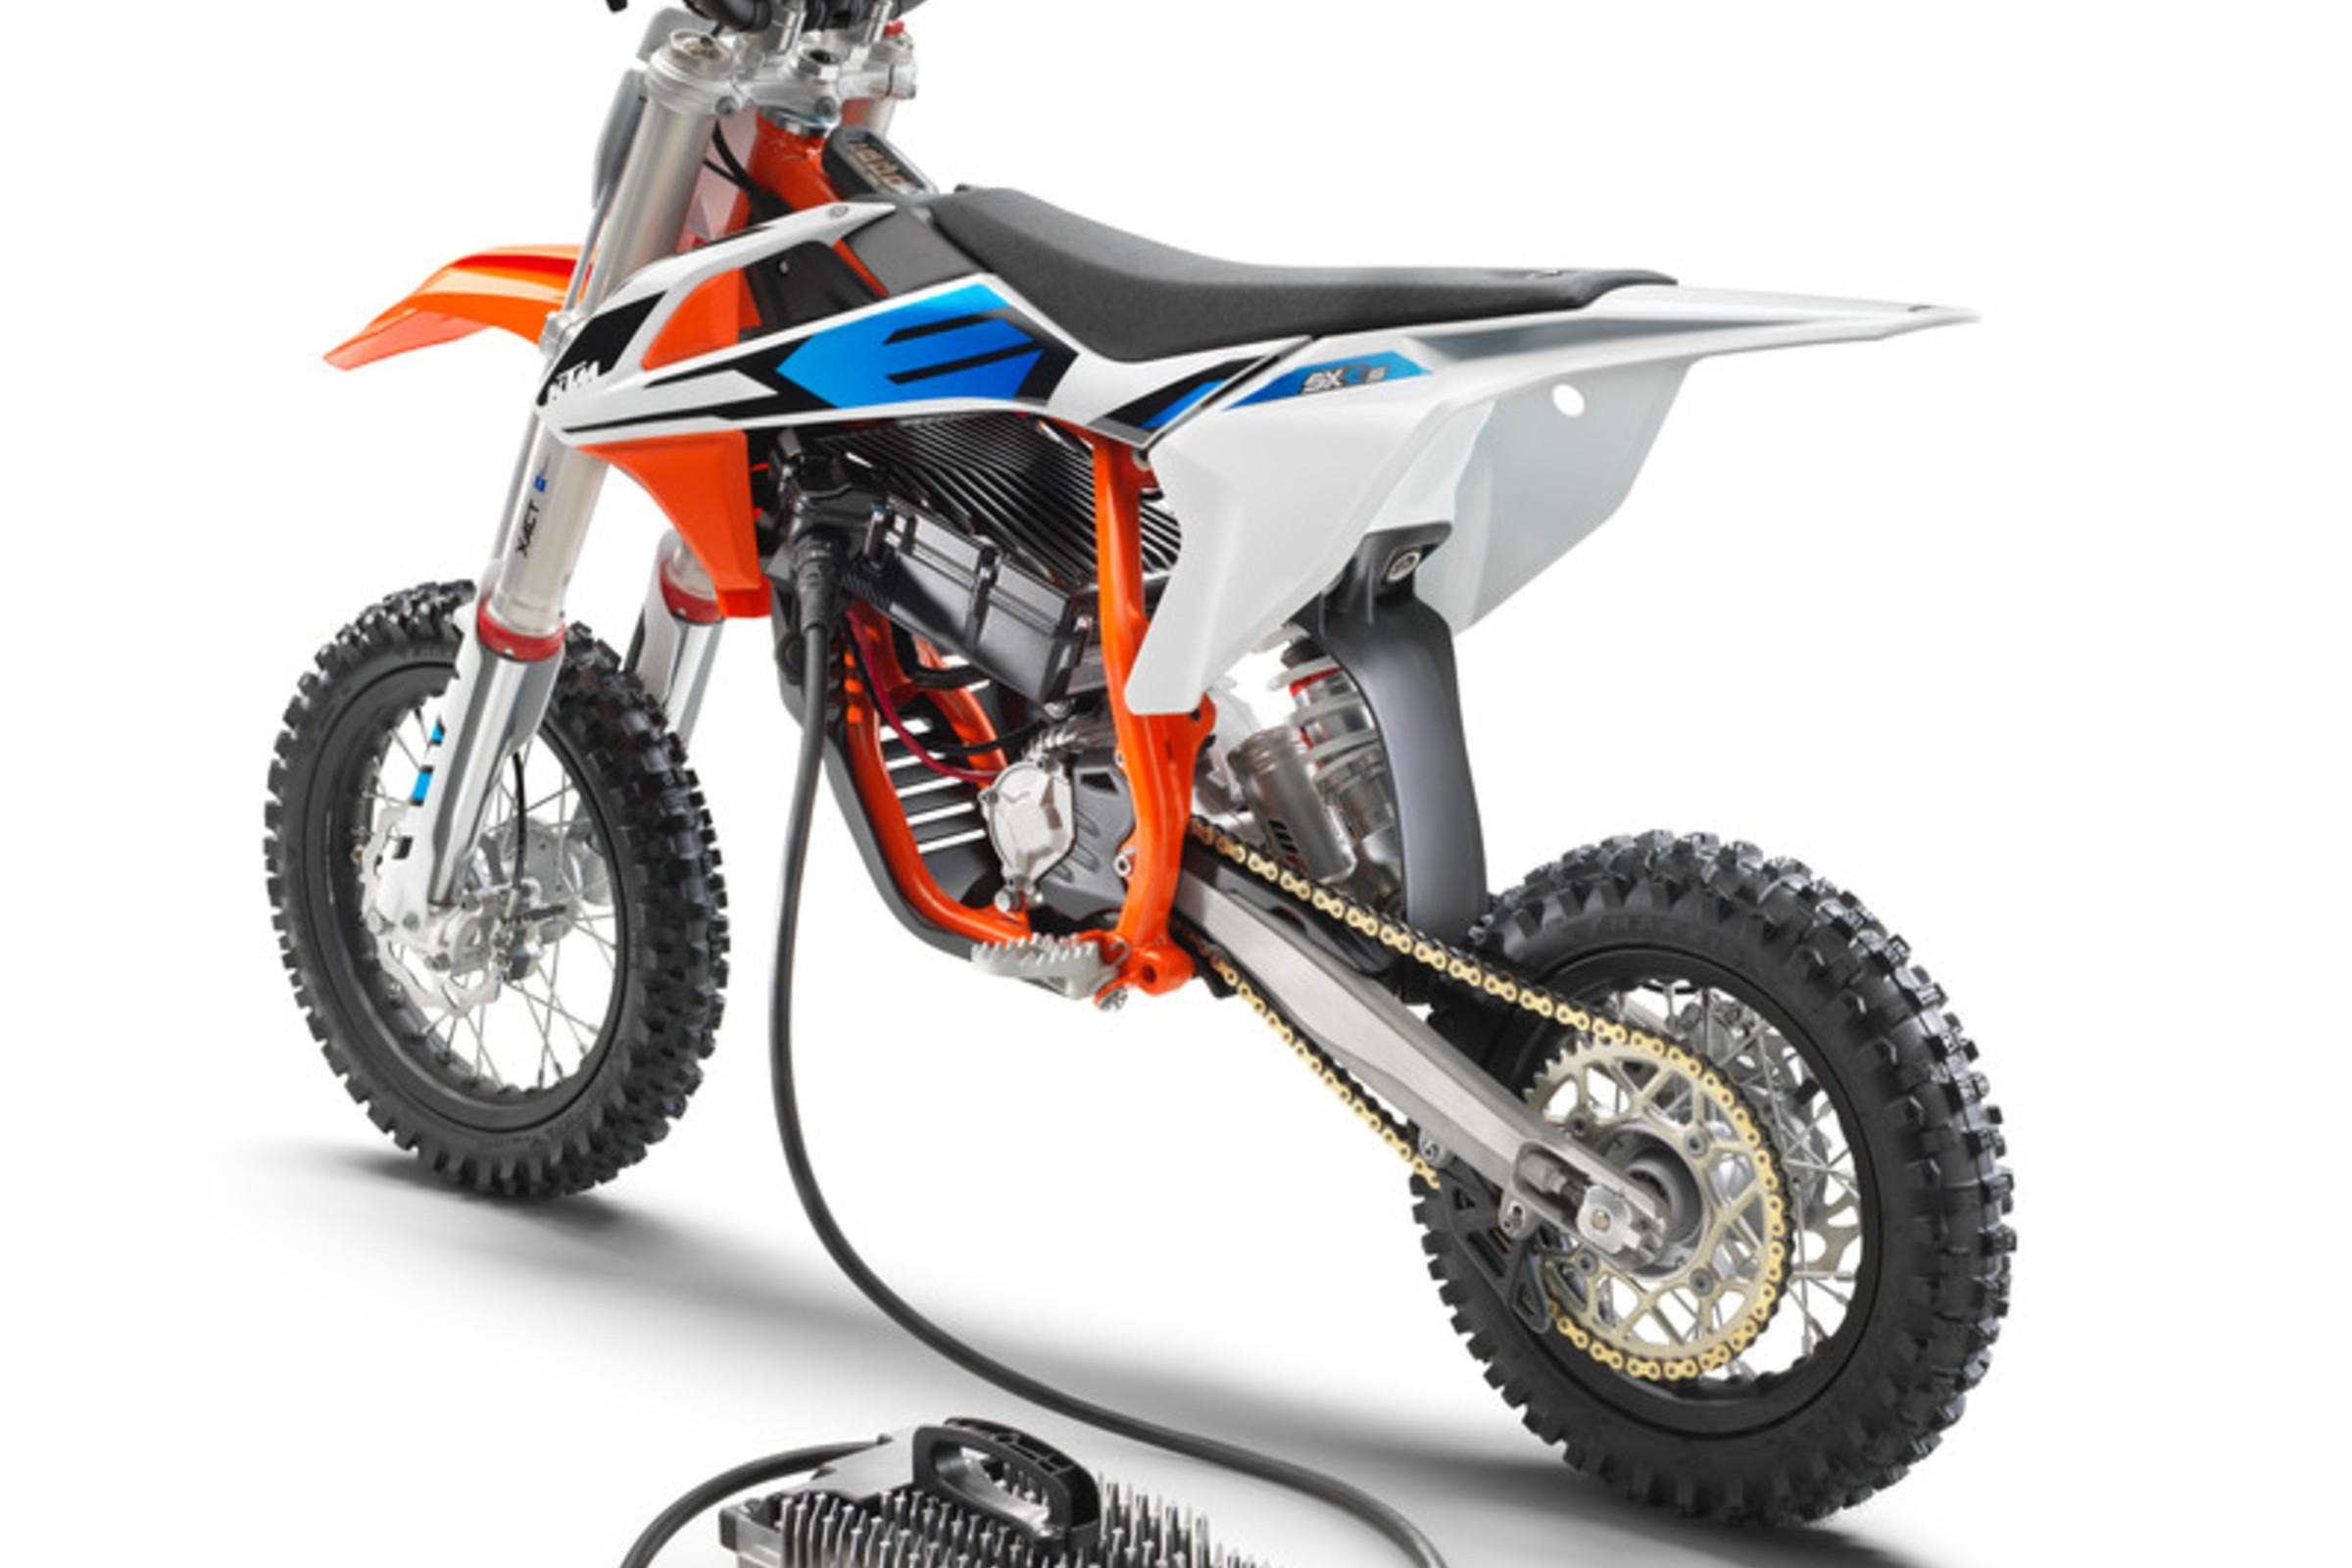 KTM Introduces 50cc-Sized Electric Dirt Bike - Racer X Online